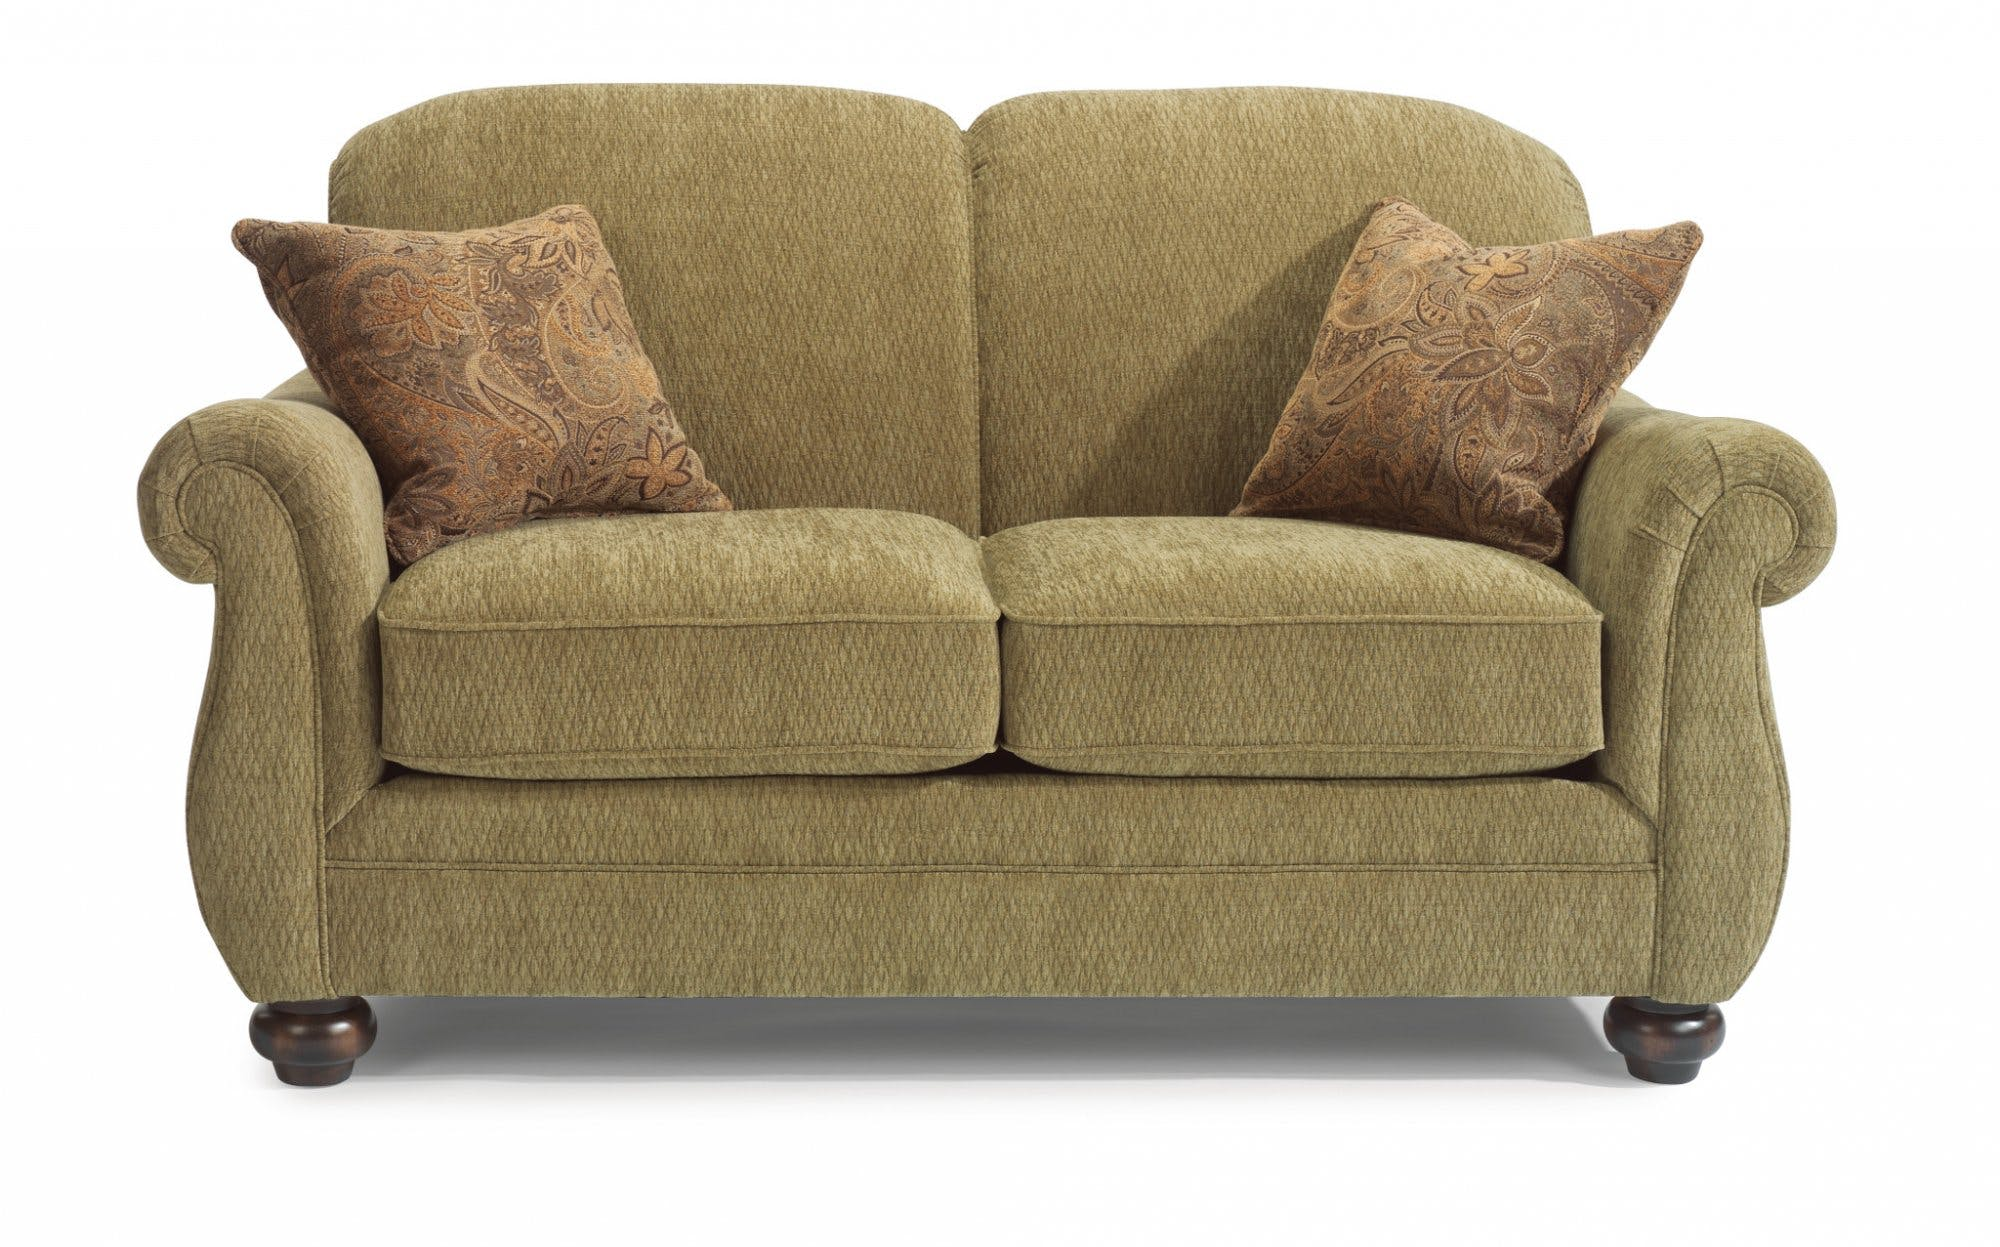 Flexsteel Living Room Fabric Loveseat 5997-20 at Carol House Furniture